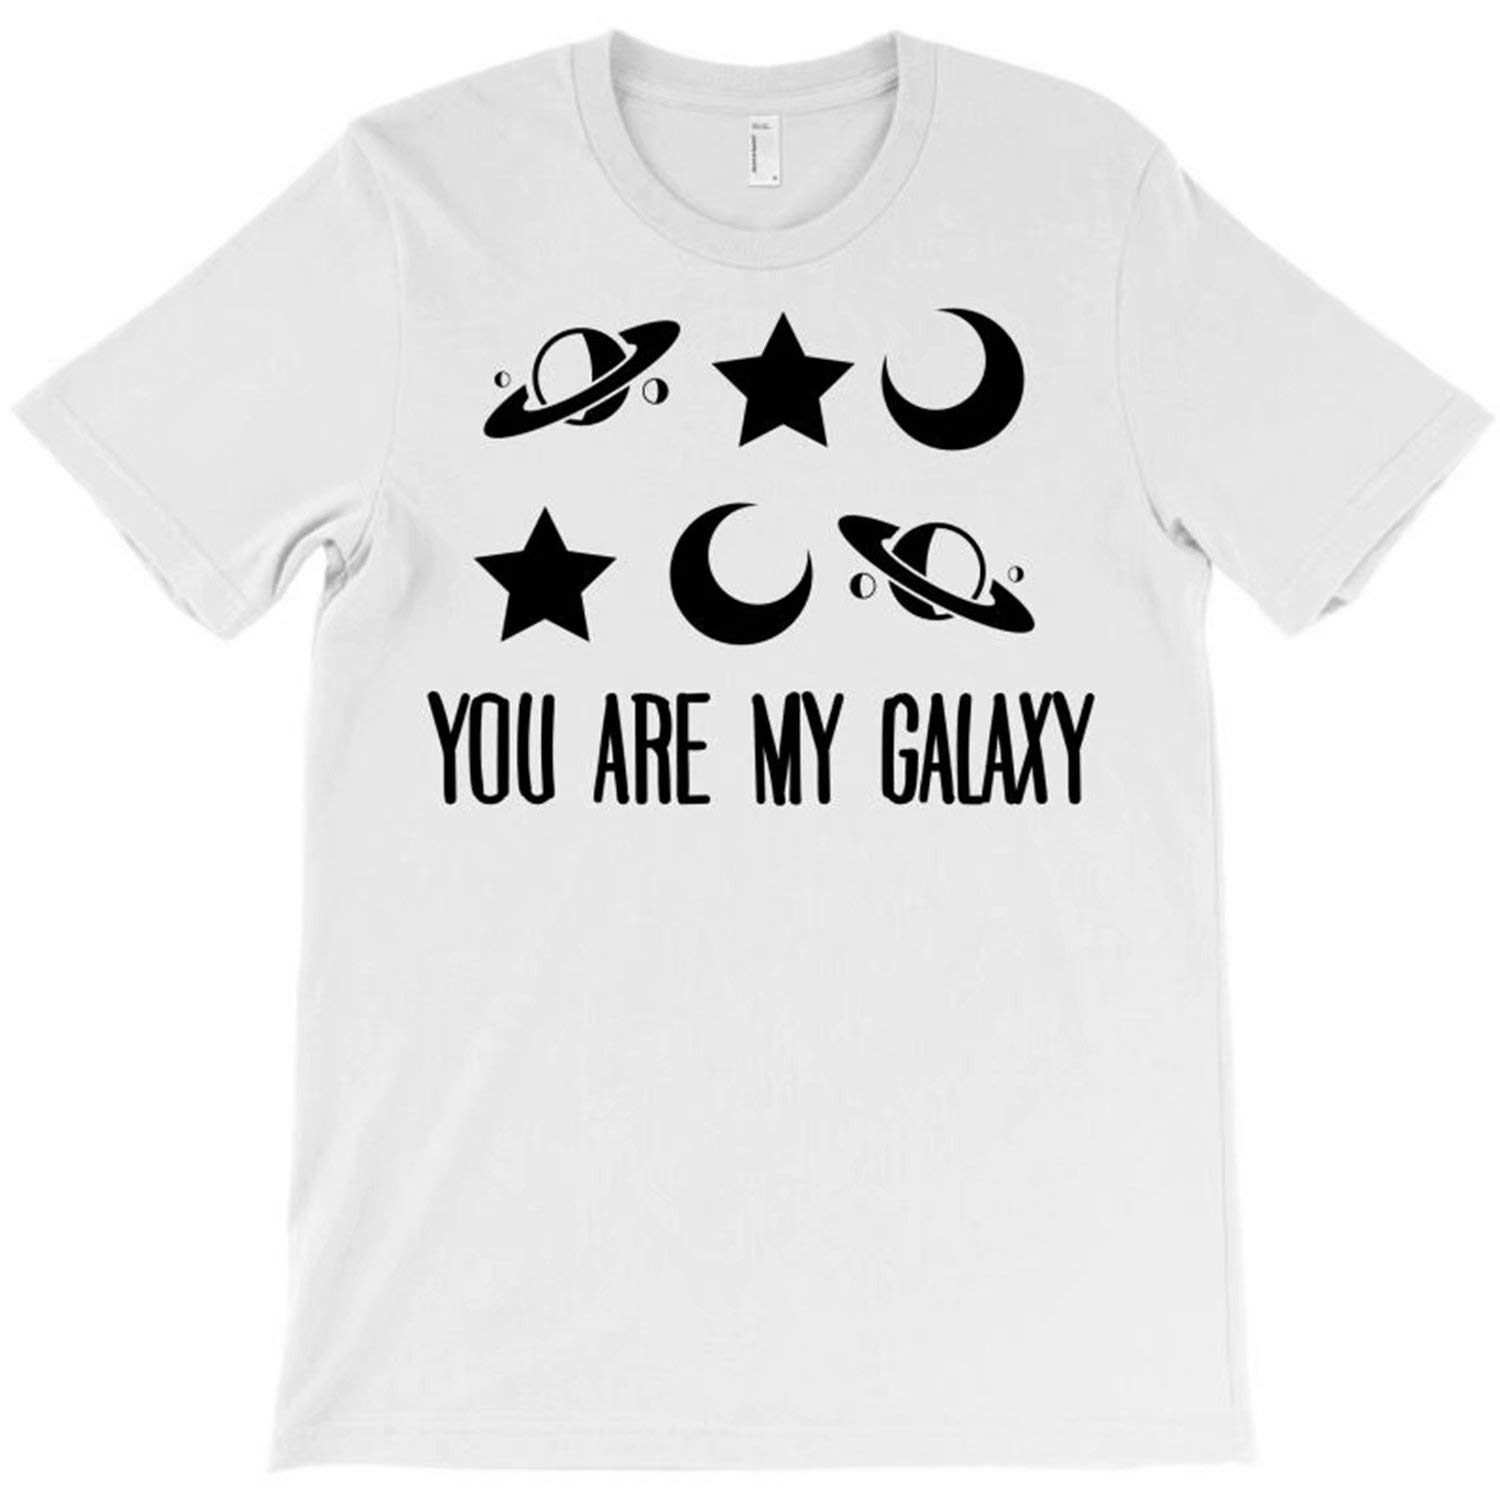 Unisex Infant Soft Tee You are My Galaxy T-Shirt 6M-24M